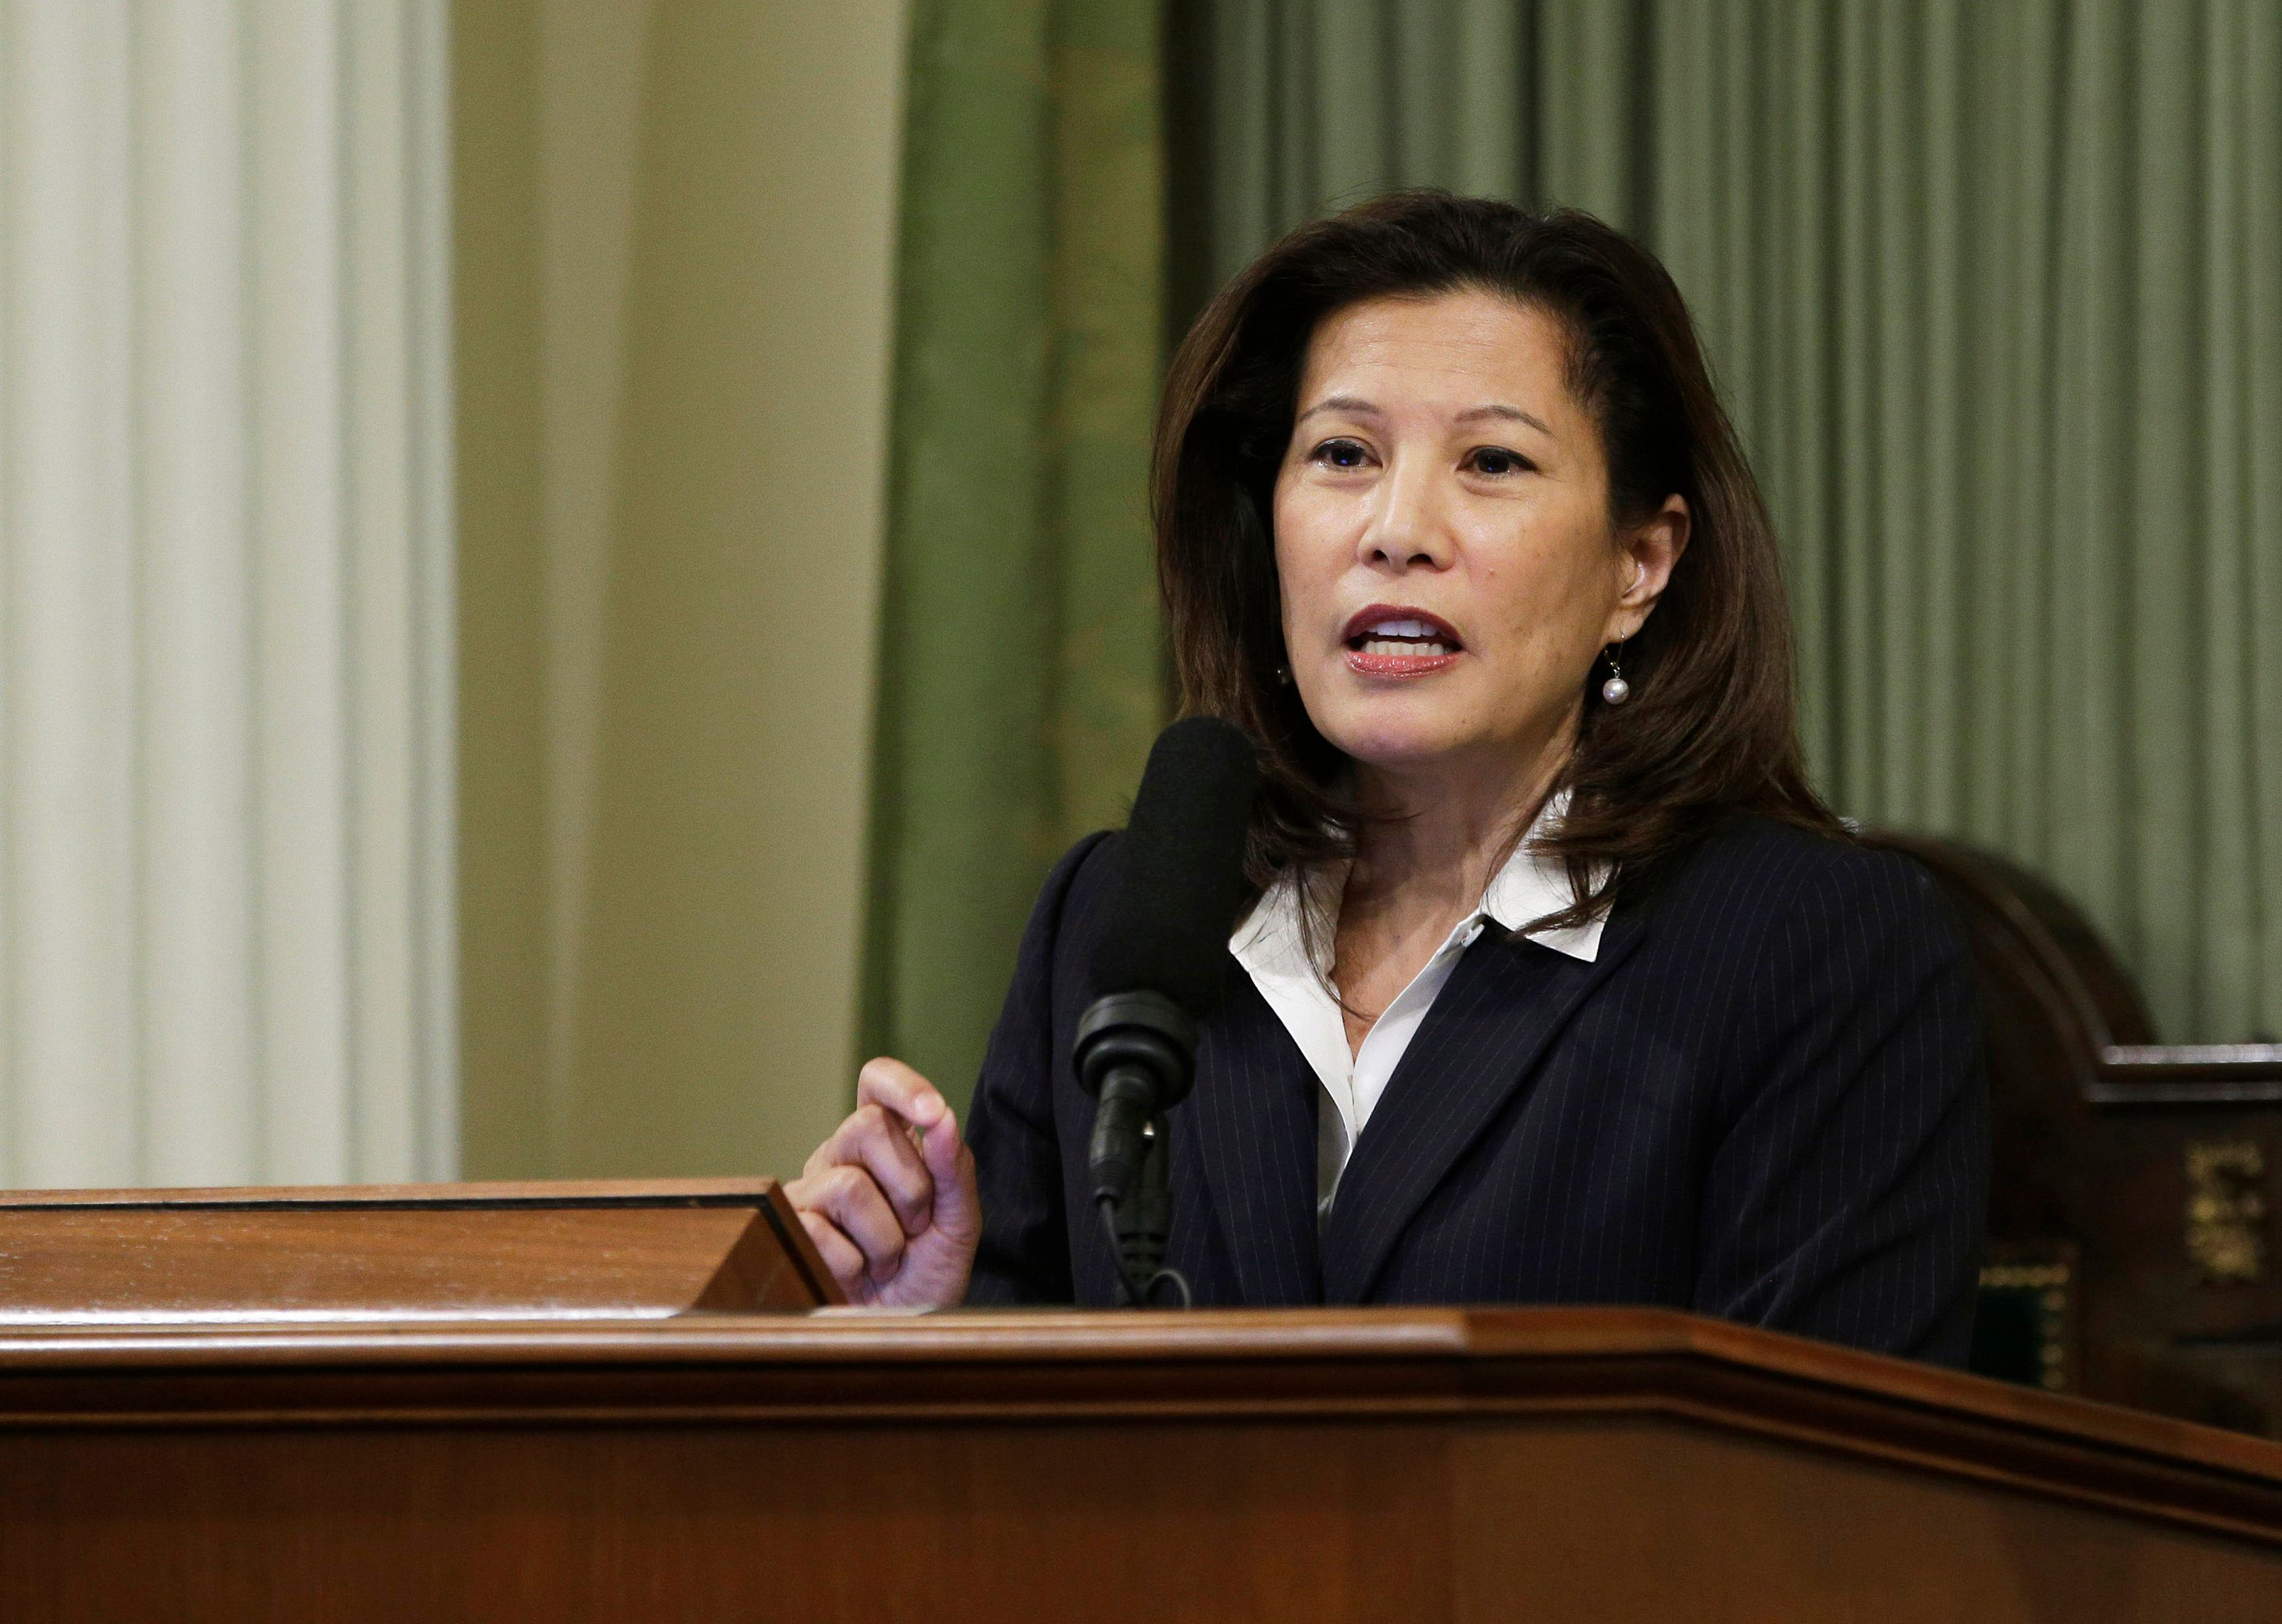 File - In this March 23, 2015, file photo, California Supreme Court Chief Justice Tani G. Cantil-Sakauye delivers her annual State of the Judiciary address before a joint session of the Legislature at the Capitol in Sacramento, Calif. Attorney General Jeff Sessions and Homeland Security Secretary John Kelly are defending federal agents who make immigration arrests at courthouses after California's top judge asked them to stop. The officials sent a letter this week to Chief Justice Cantil-Sakauye saying state and local policies that bar police from turning over suspects for deportation have compelled federal agents to make arrests at courthouses and other public places. (AP Photo/Rich Pedroncelli, File)